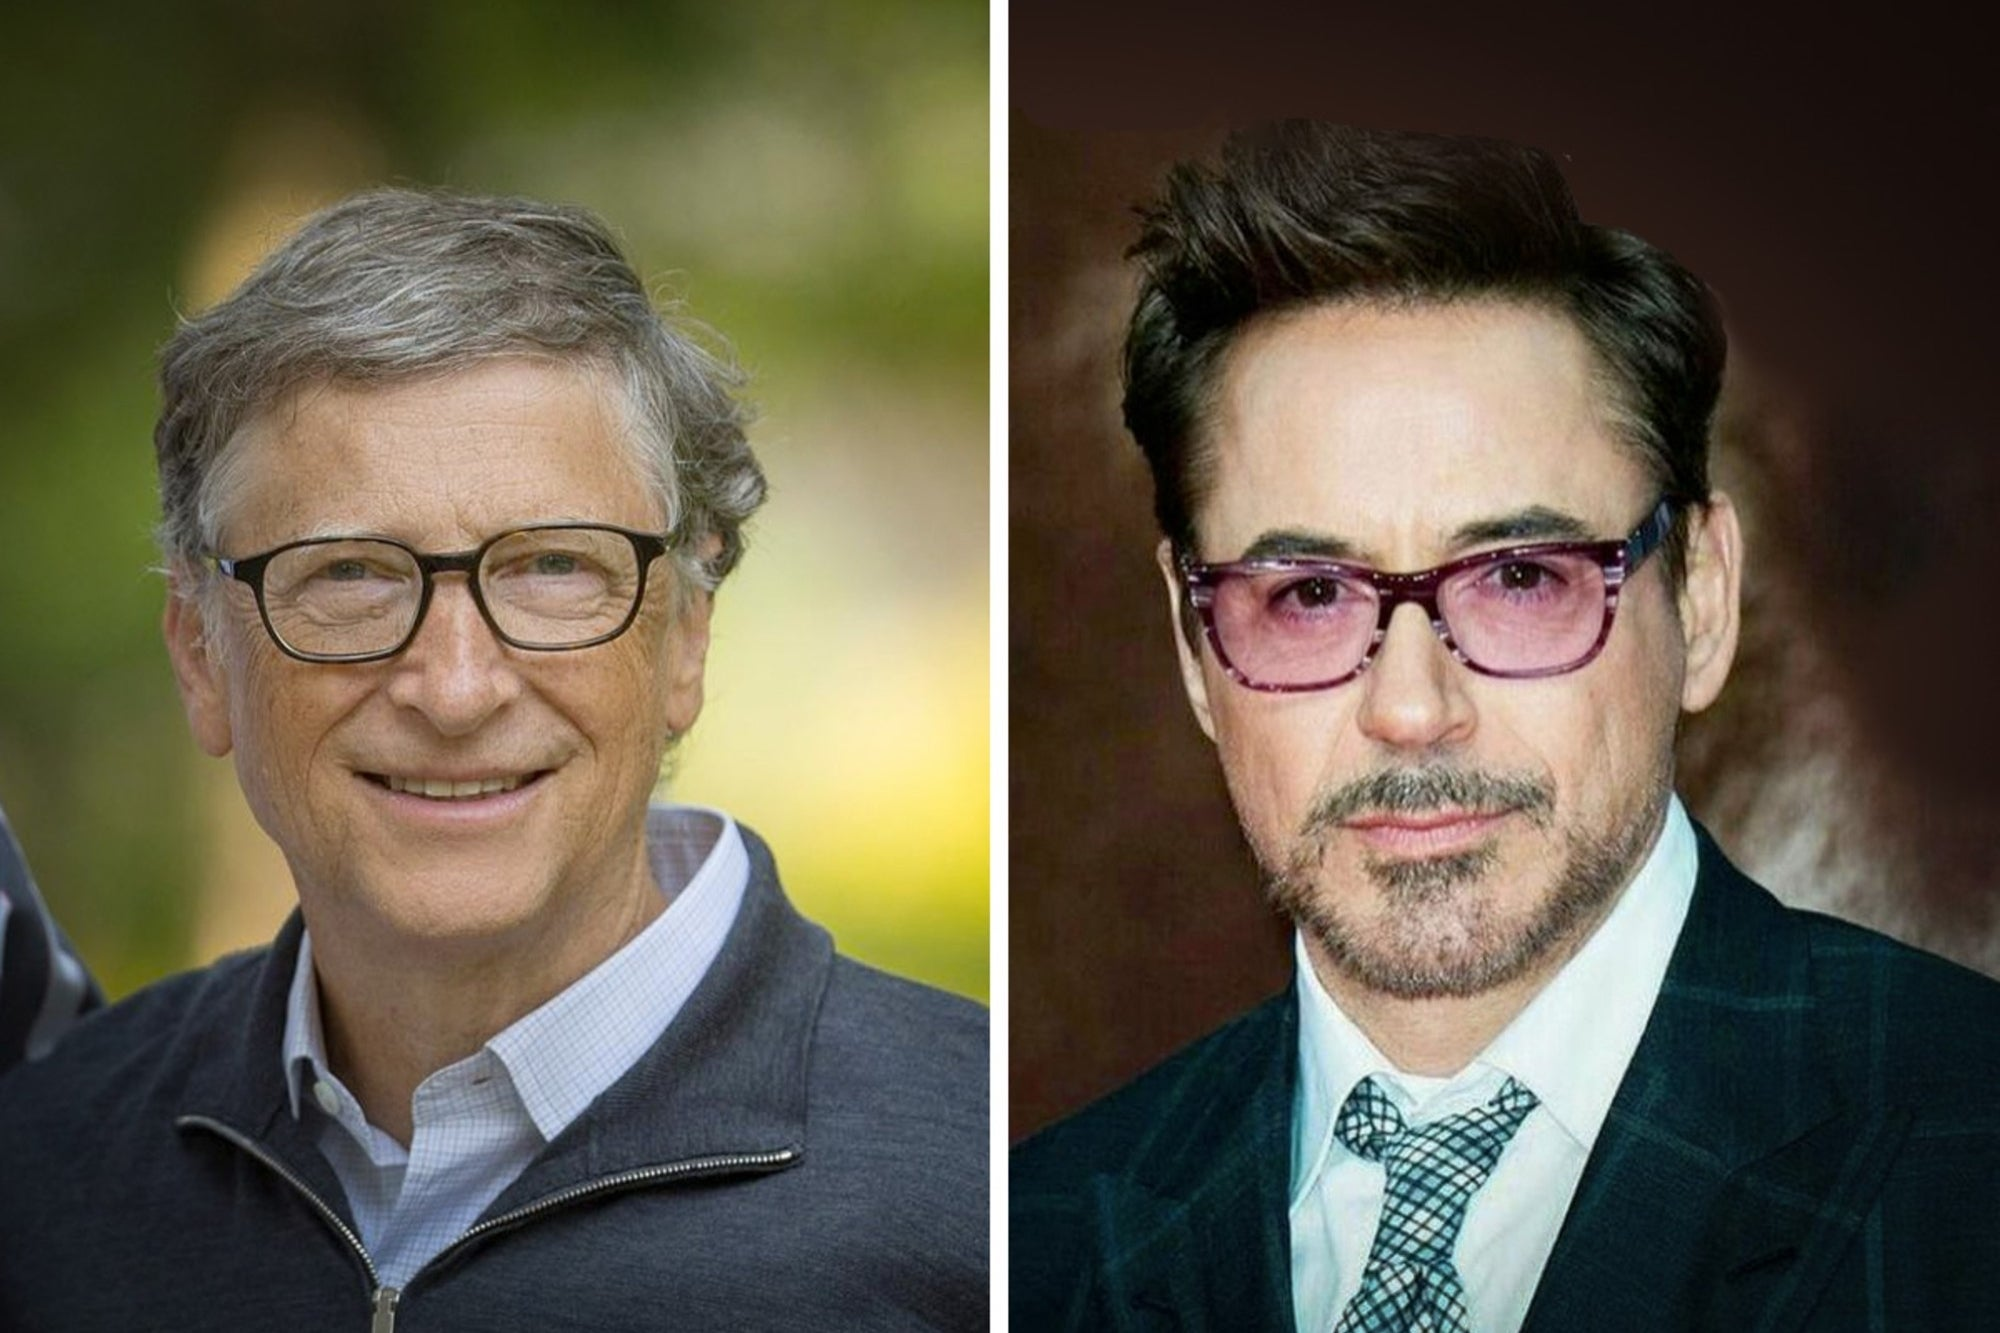 Bill Gates and 'Iron Man' team up to fund this energy startup